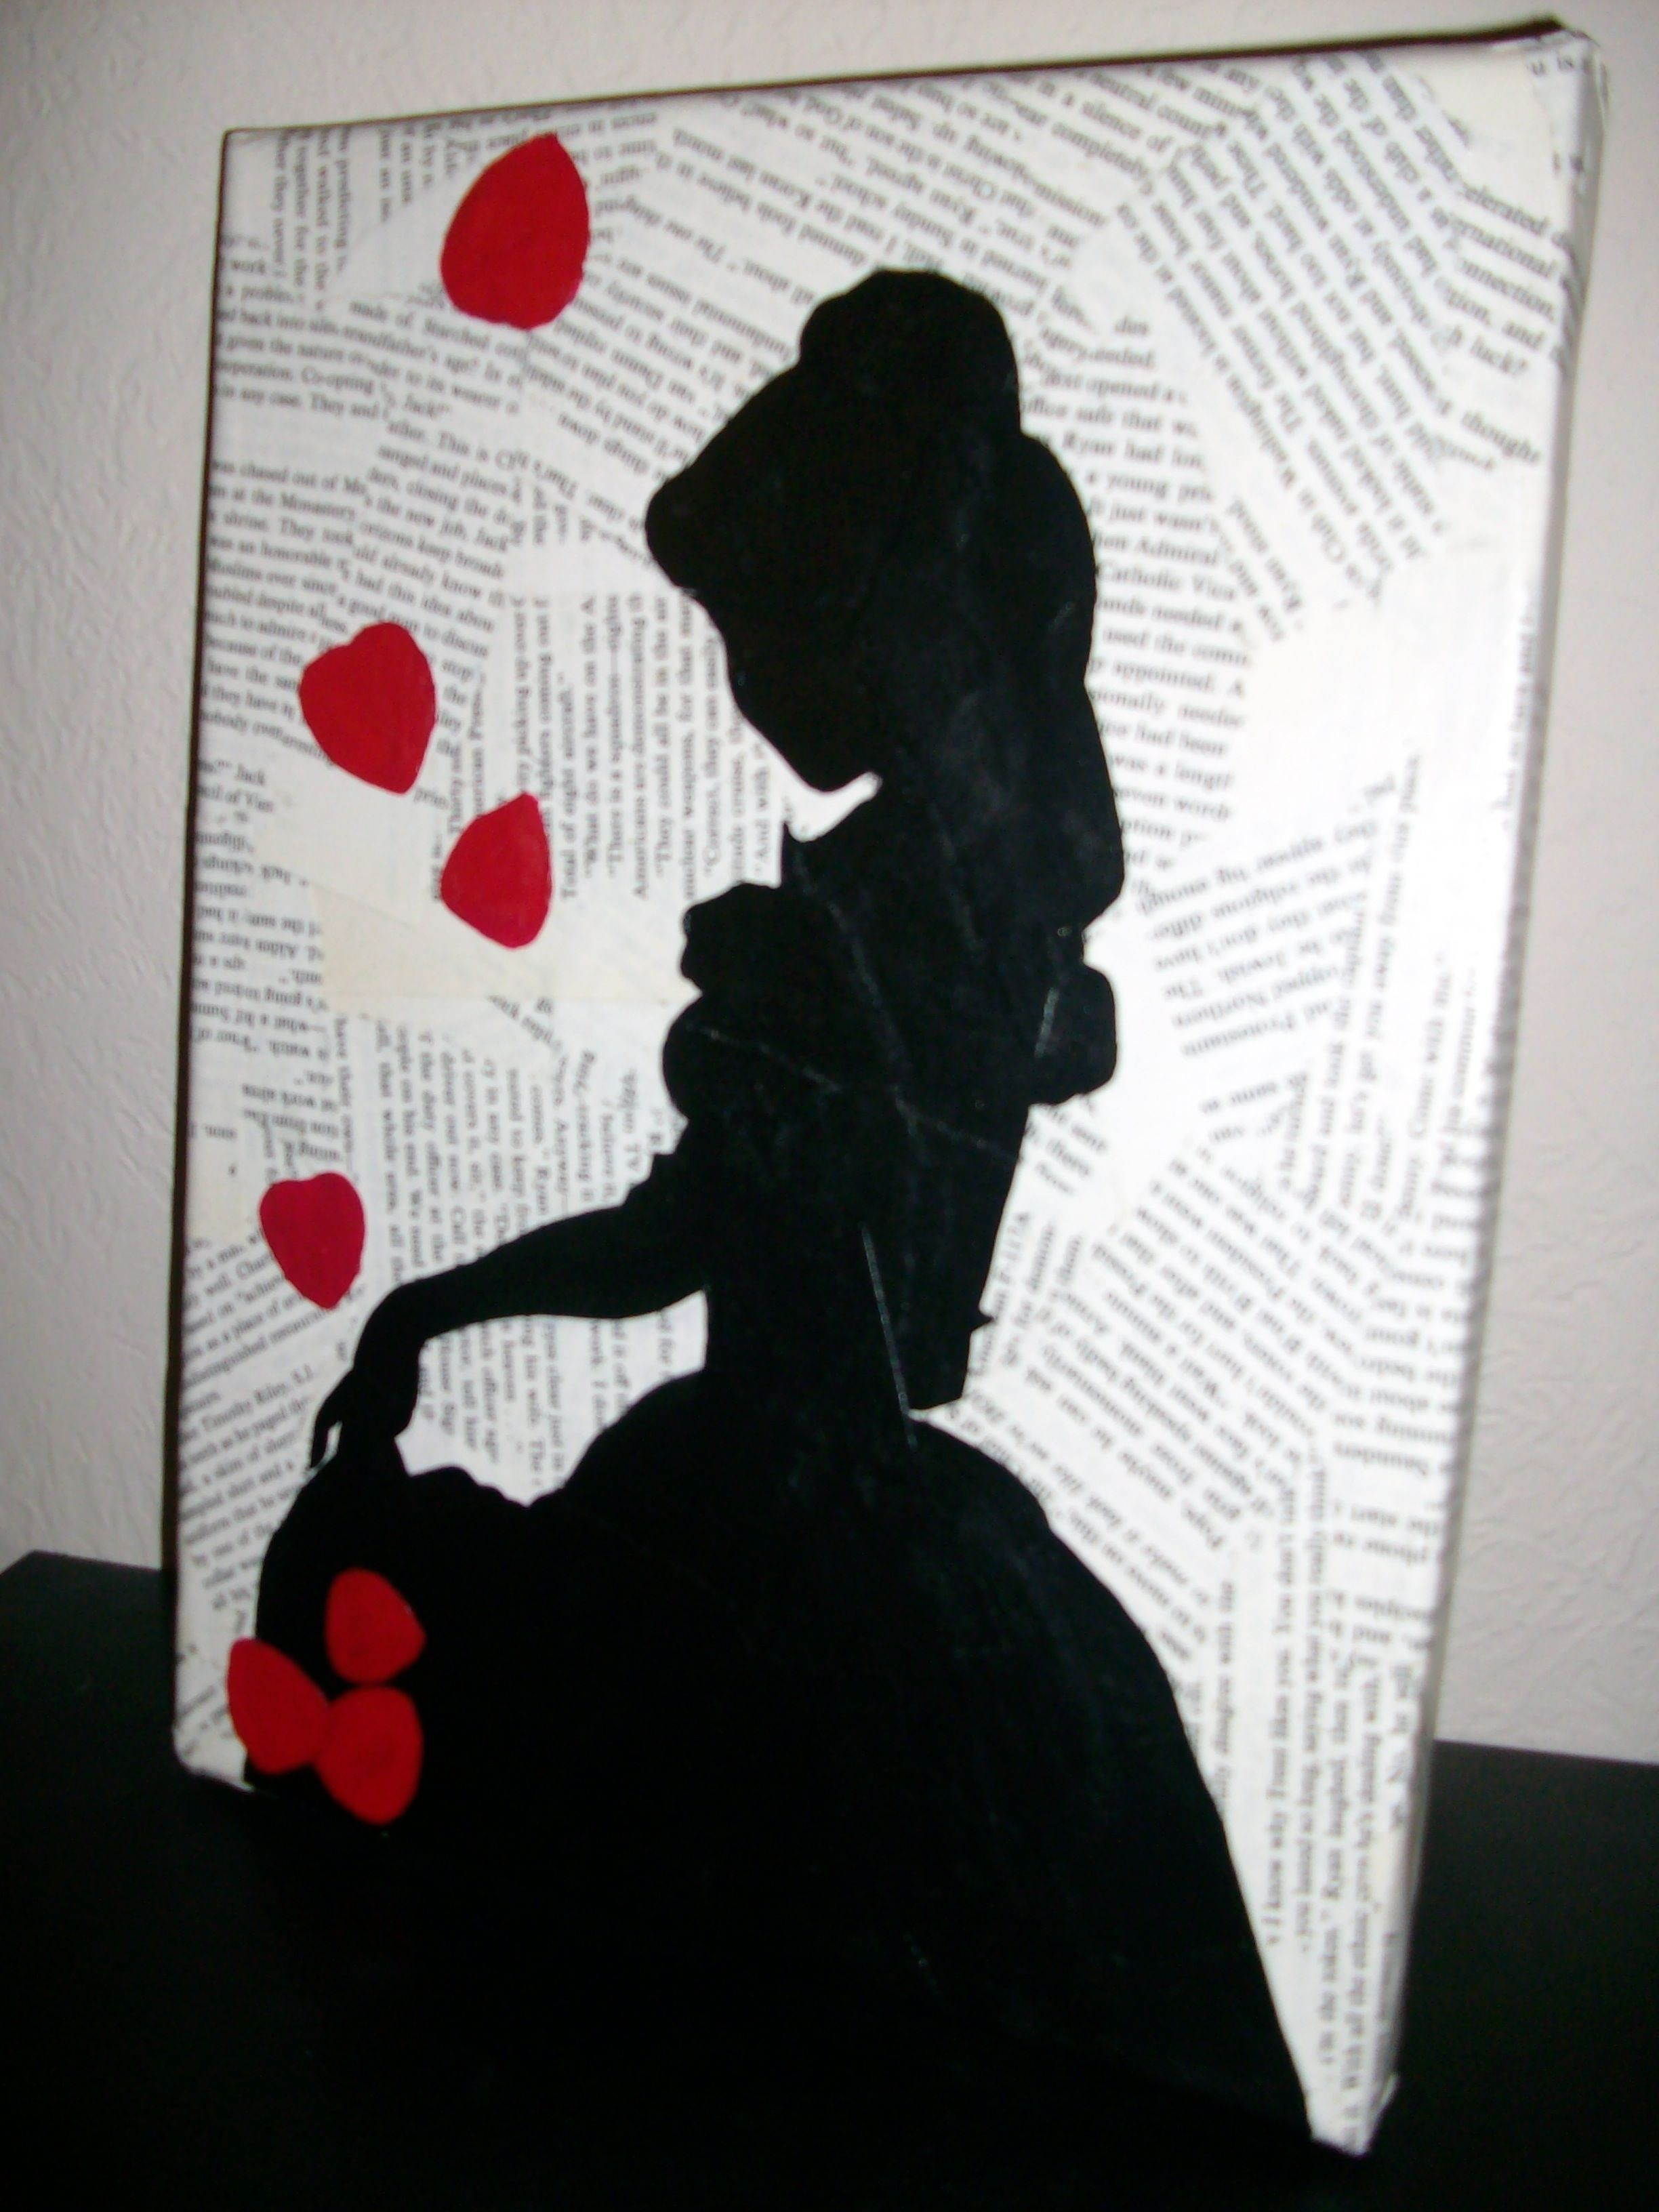 Canvas Book Pages Mod Podge Belle Silhouette And Paint Super Easy Genius Disney